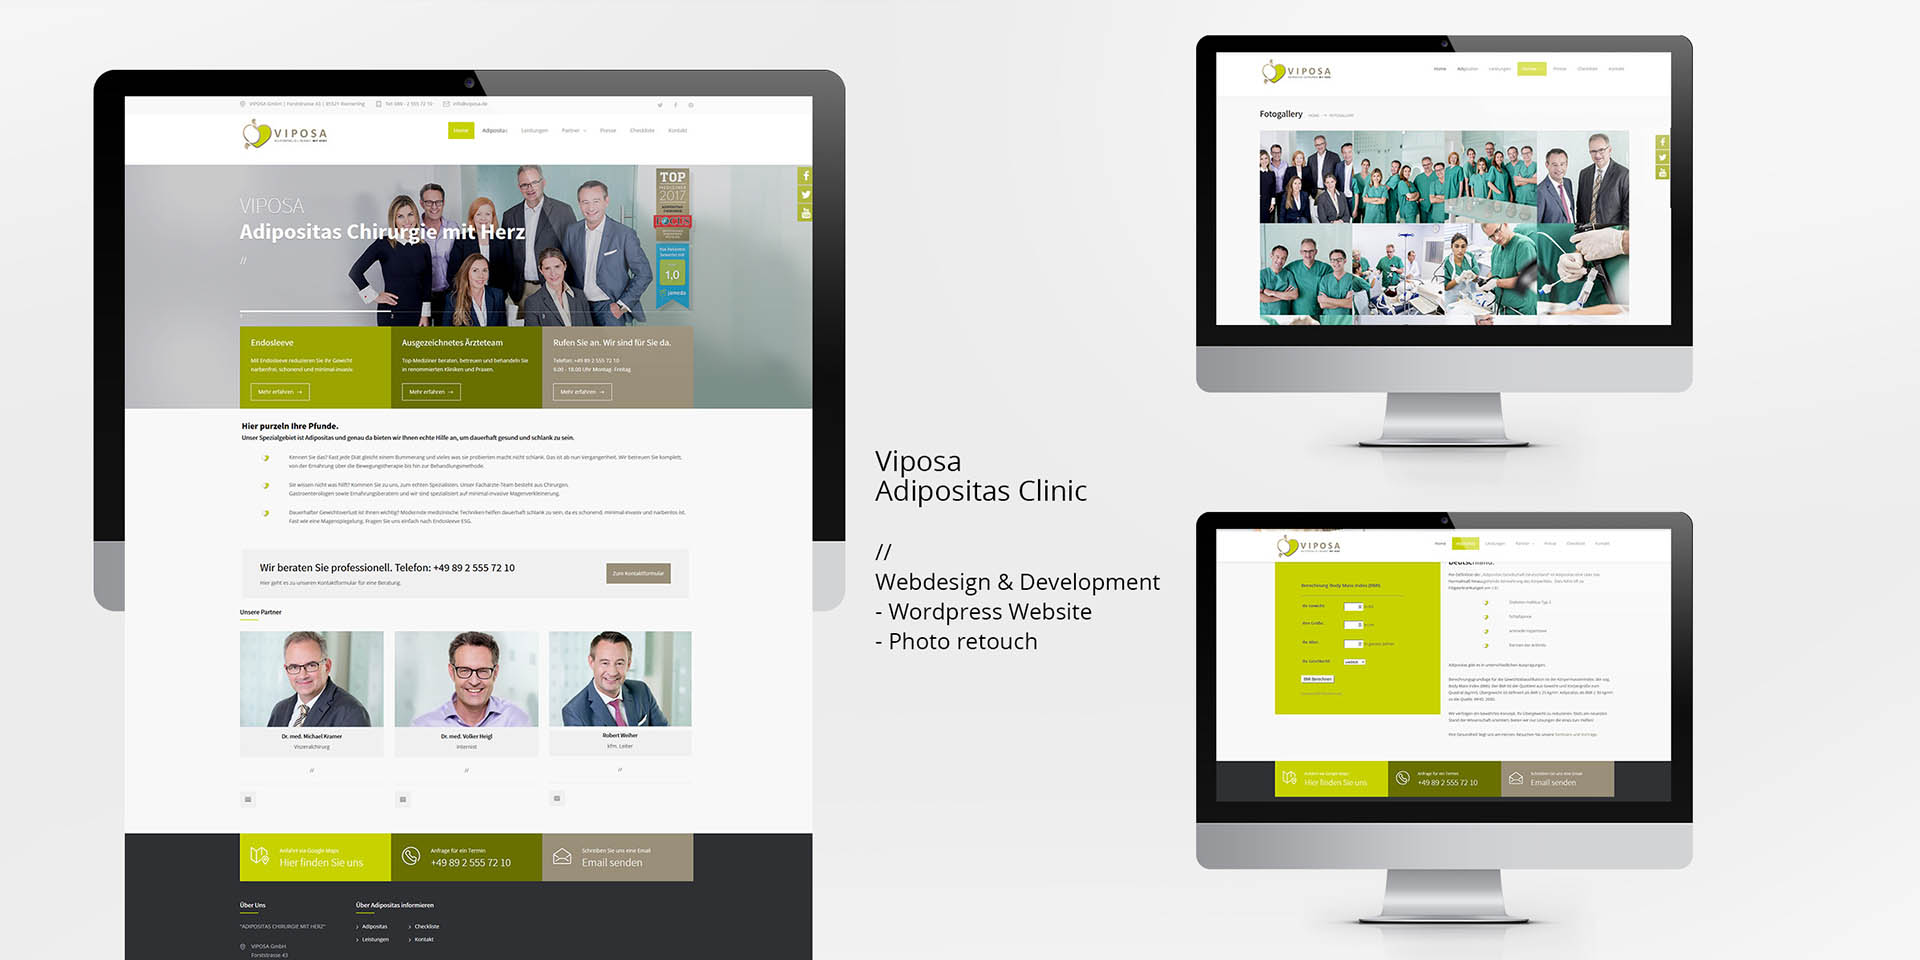 webdesign logo ci corporate identitiystationery corporate design viposa v3